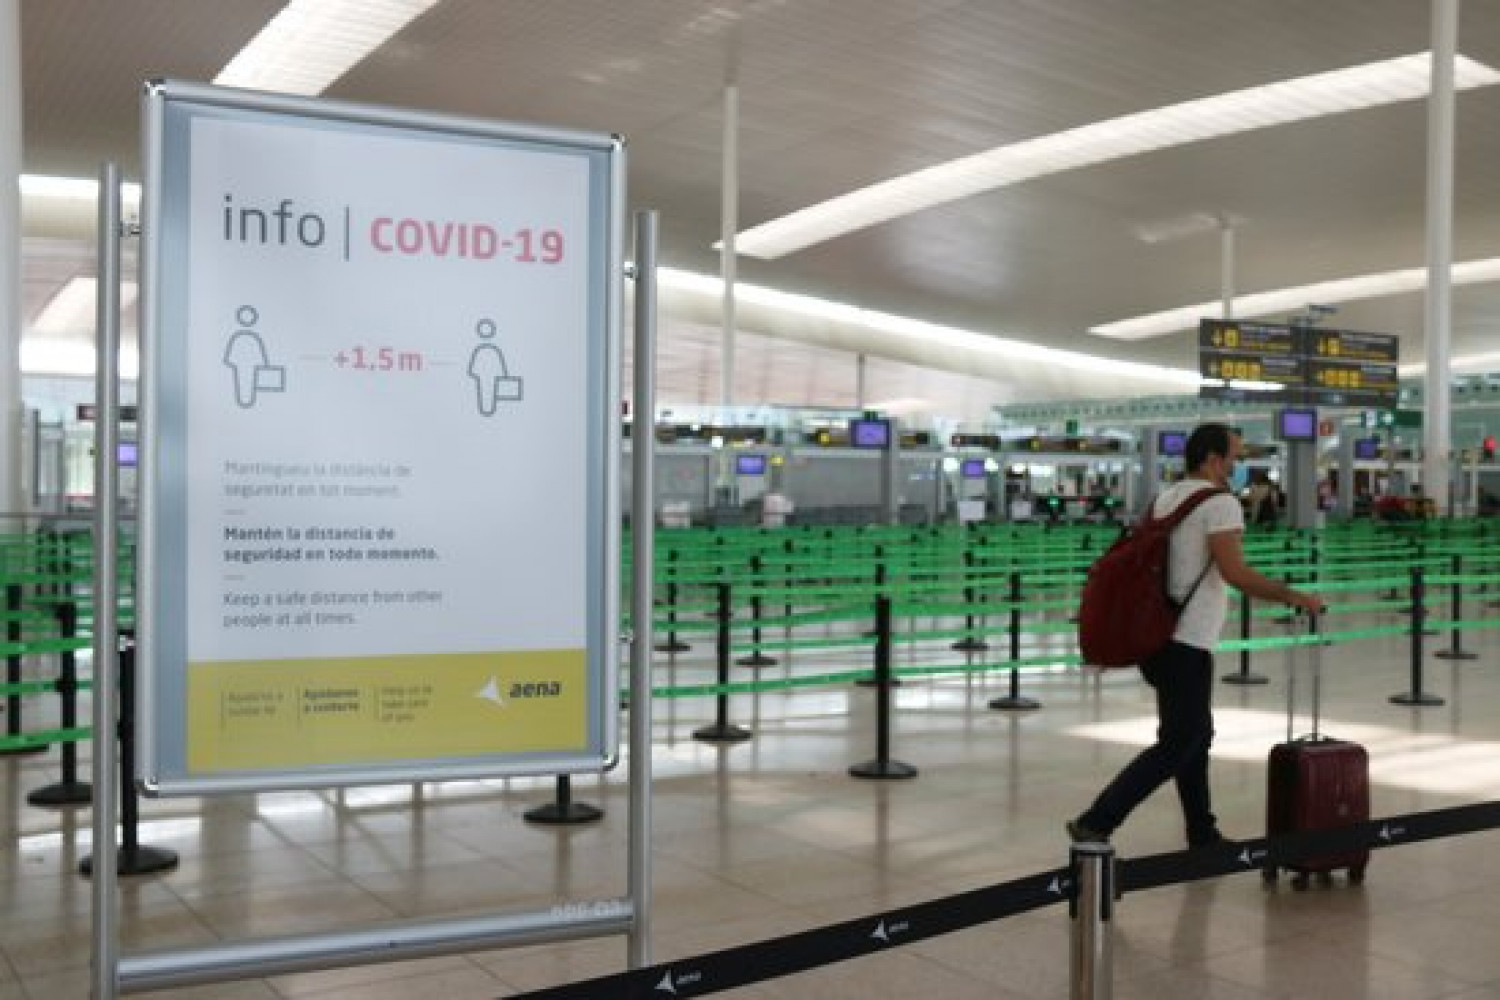 A passenger walks through Barcelona airport in July 2020 (by Norma Vidal)